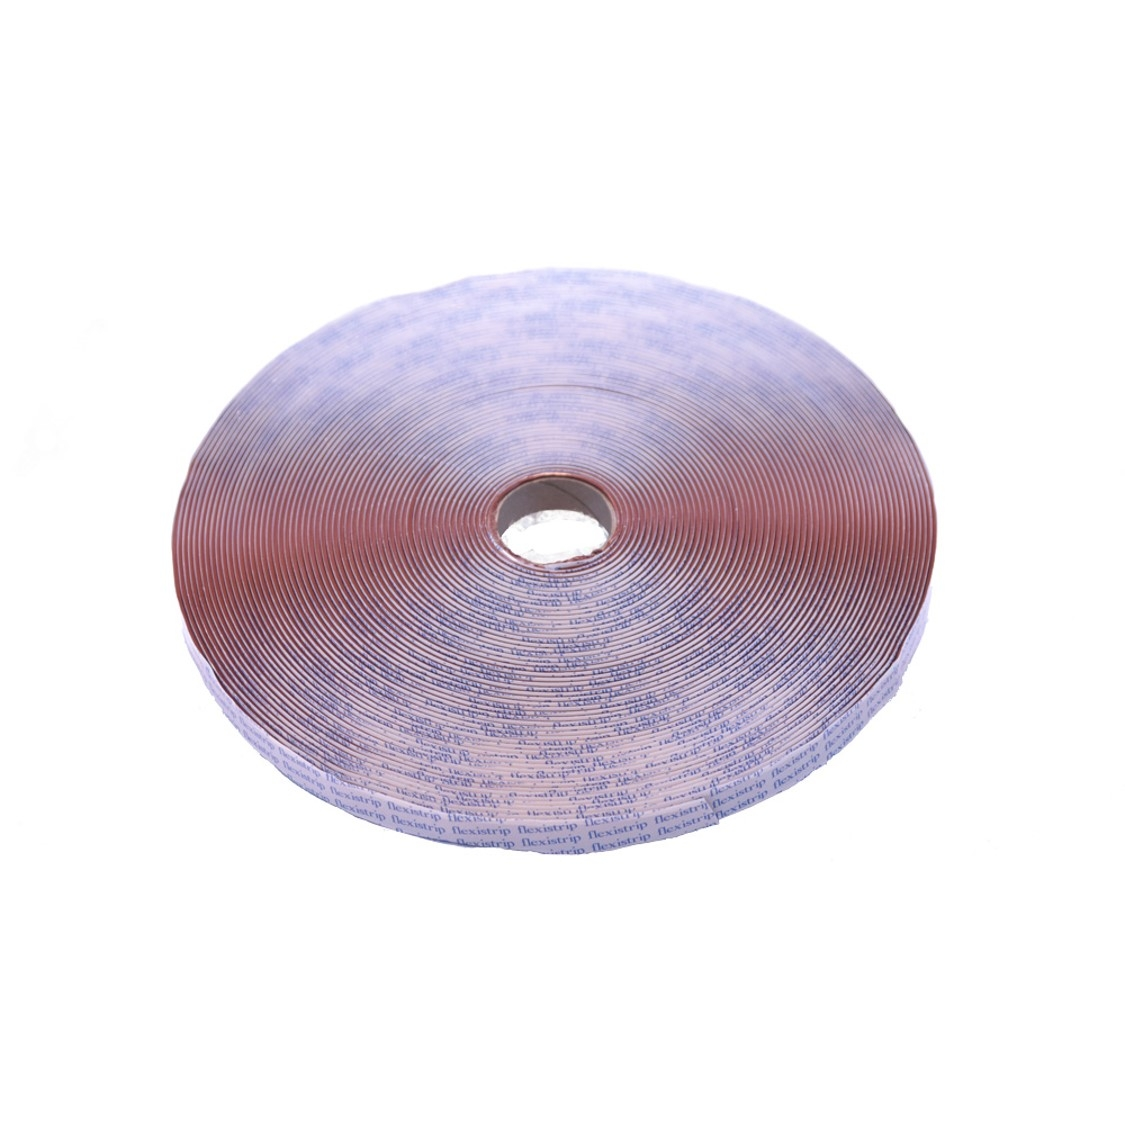 Flexistrip 12 x 2.5mm Mahogany Butyl Glazing Strip (19m Reel)